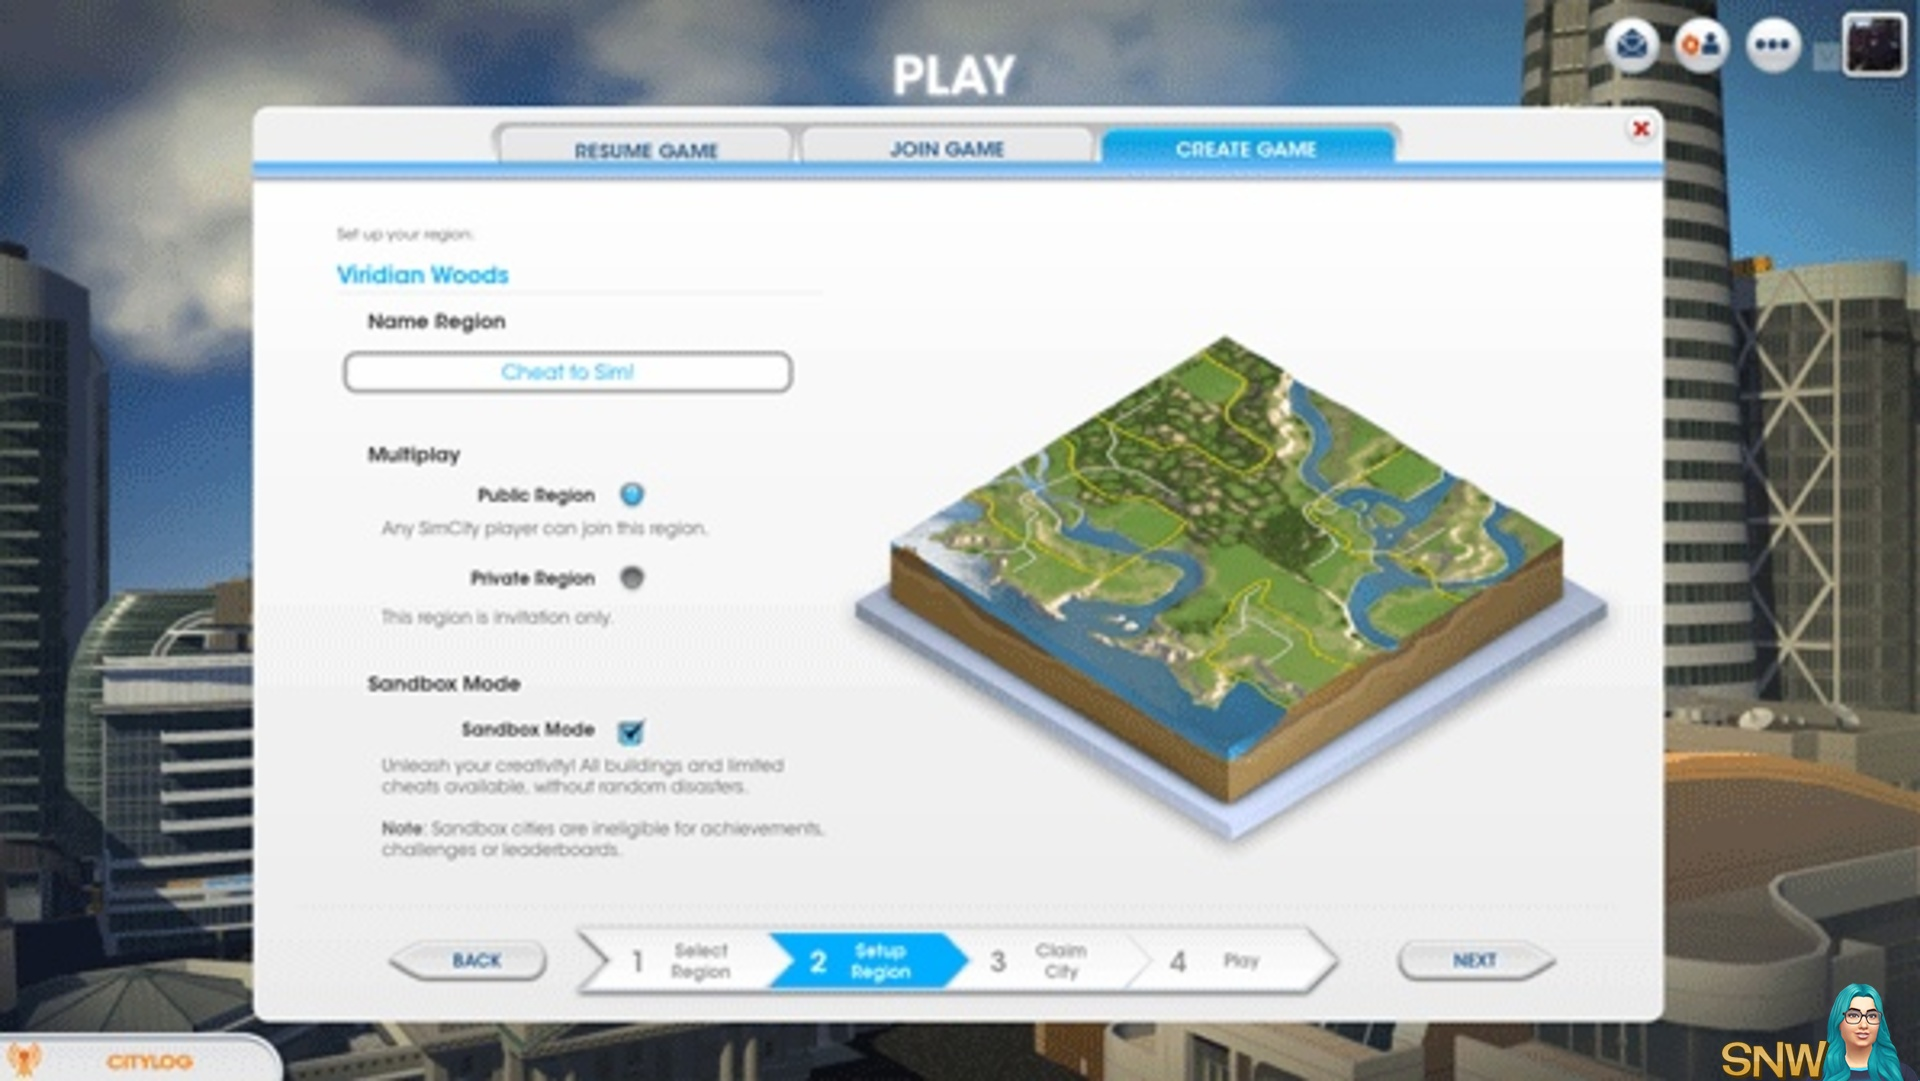 SimCity Sandbox Mode